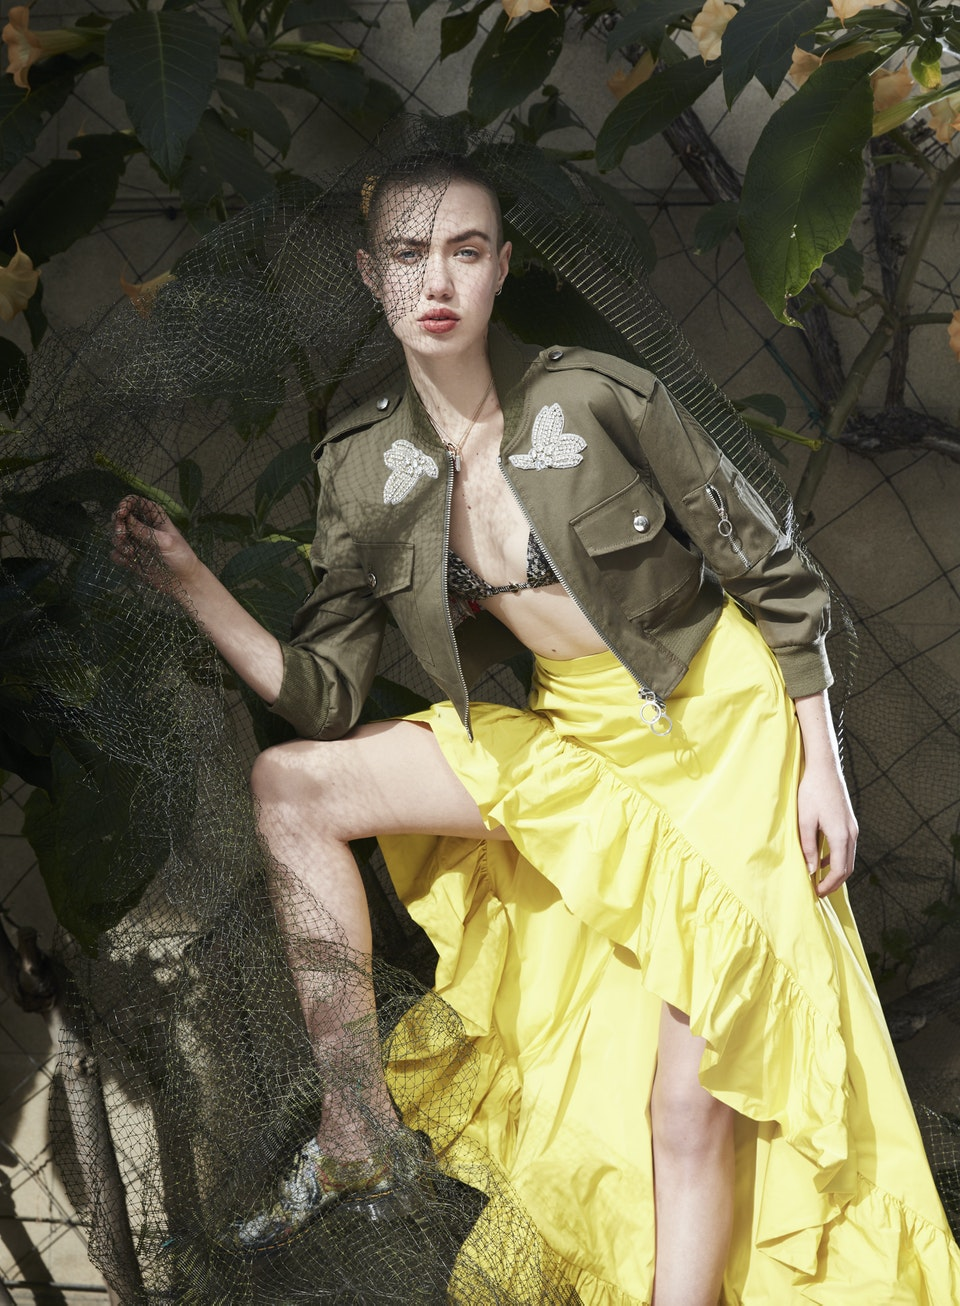 GLAMOUR Italy by Sandrine & Michael - GLAMOUR Italy by Sandrine & Michael